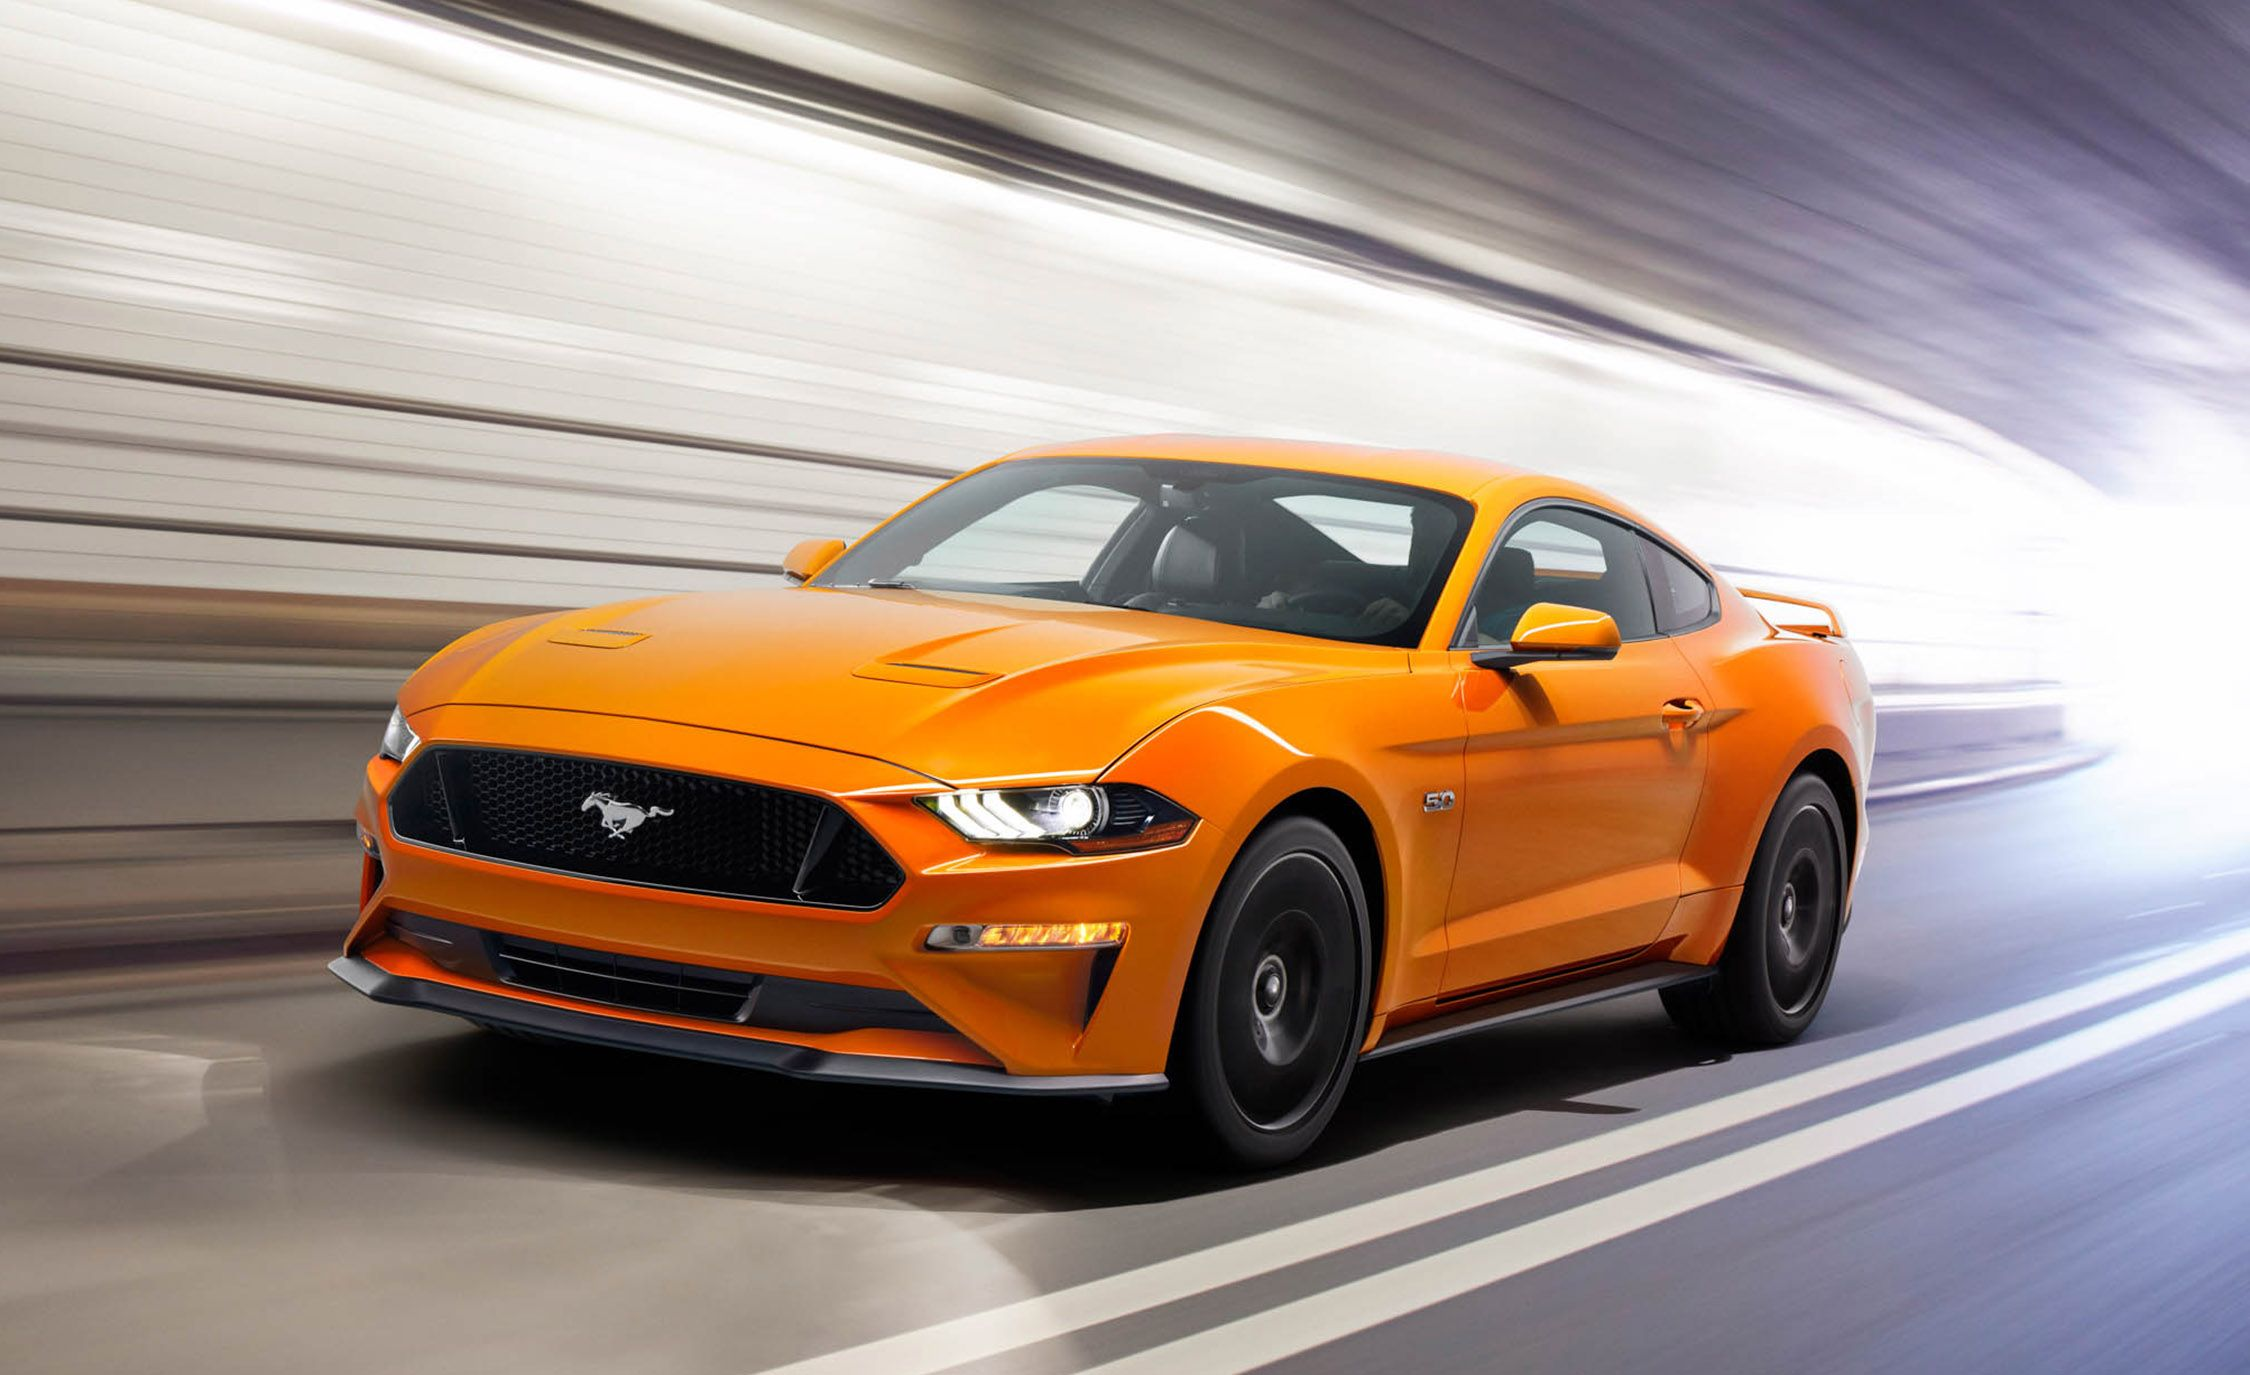 2018 Mustang Gt Pricing >> 2018 Ford Mustang Photos And Info News Car And Driver